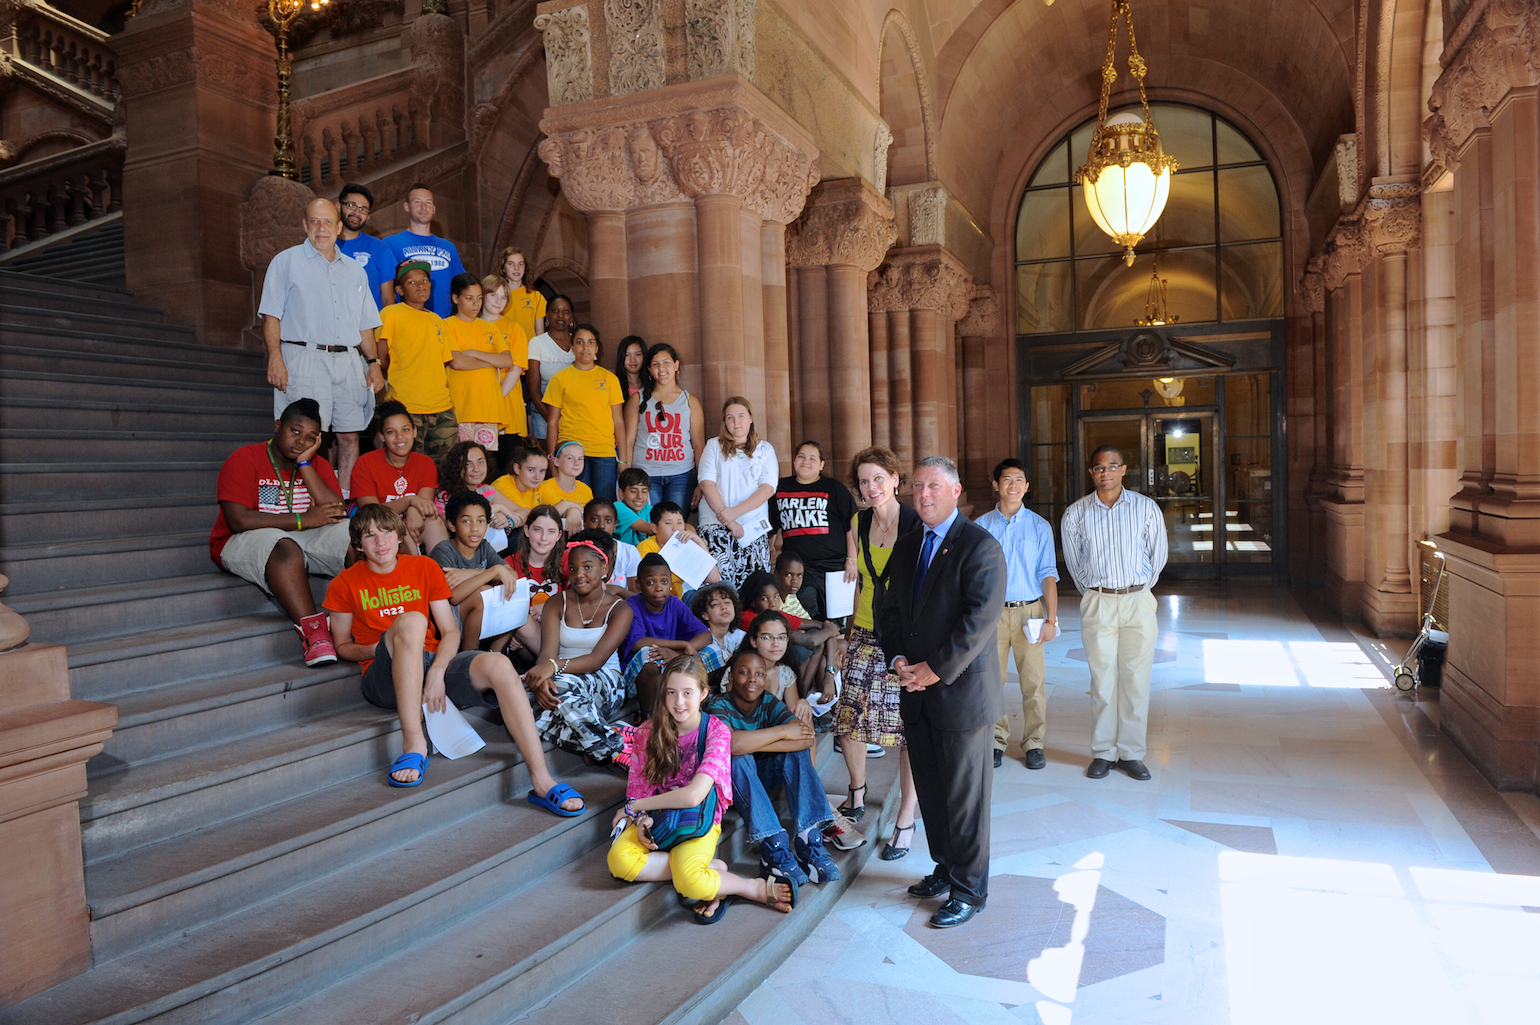 Assemblymembers Fahy and McDonald pictured with Albany Police Athletic League�s Summer Camp at the Million Dollar staircase in the Capitol.